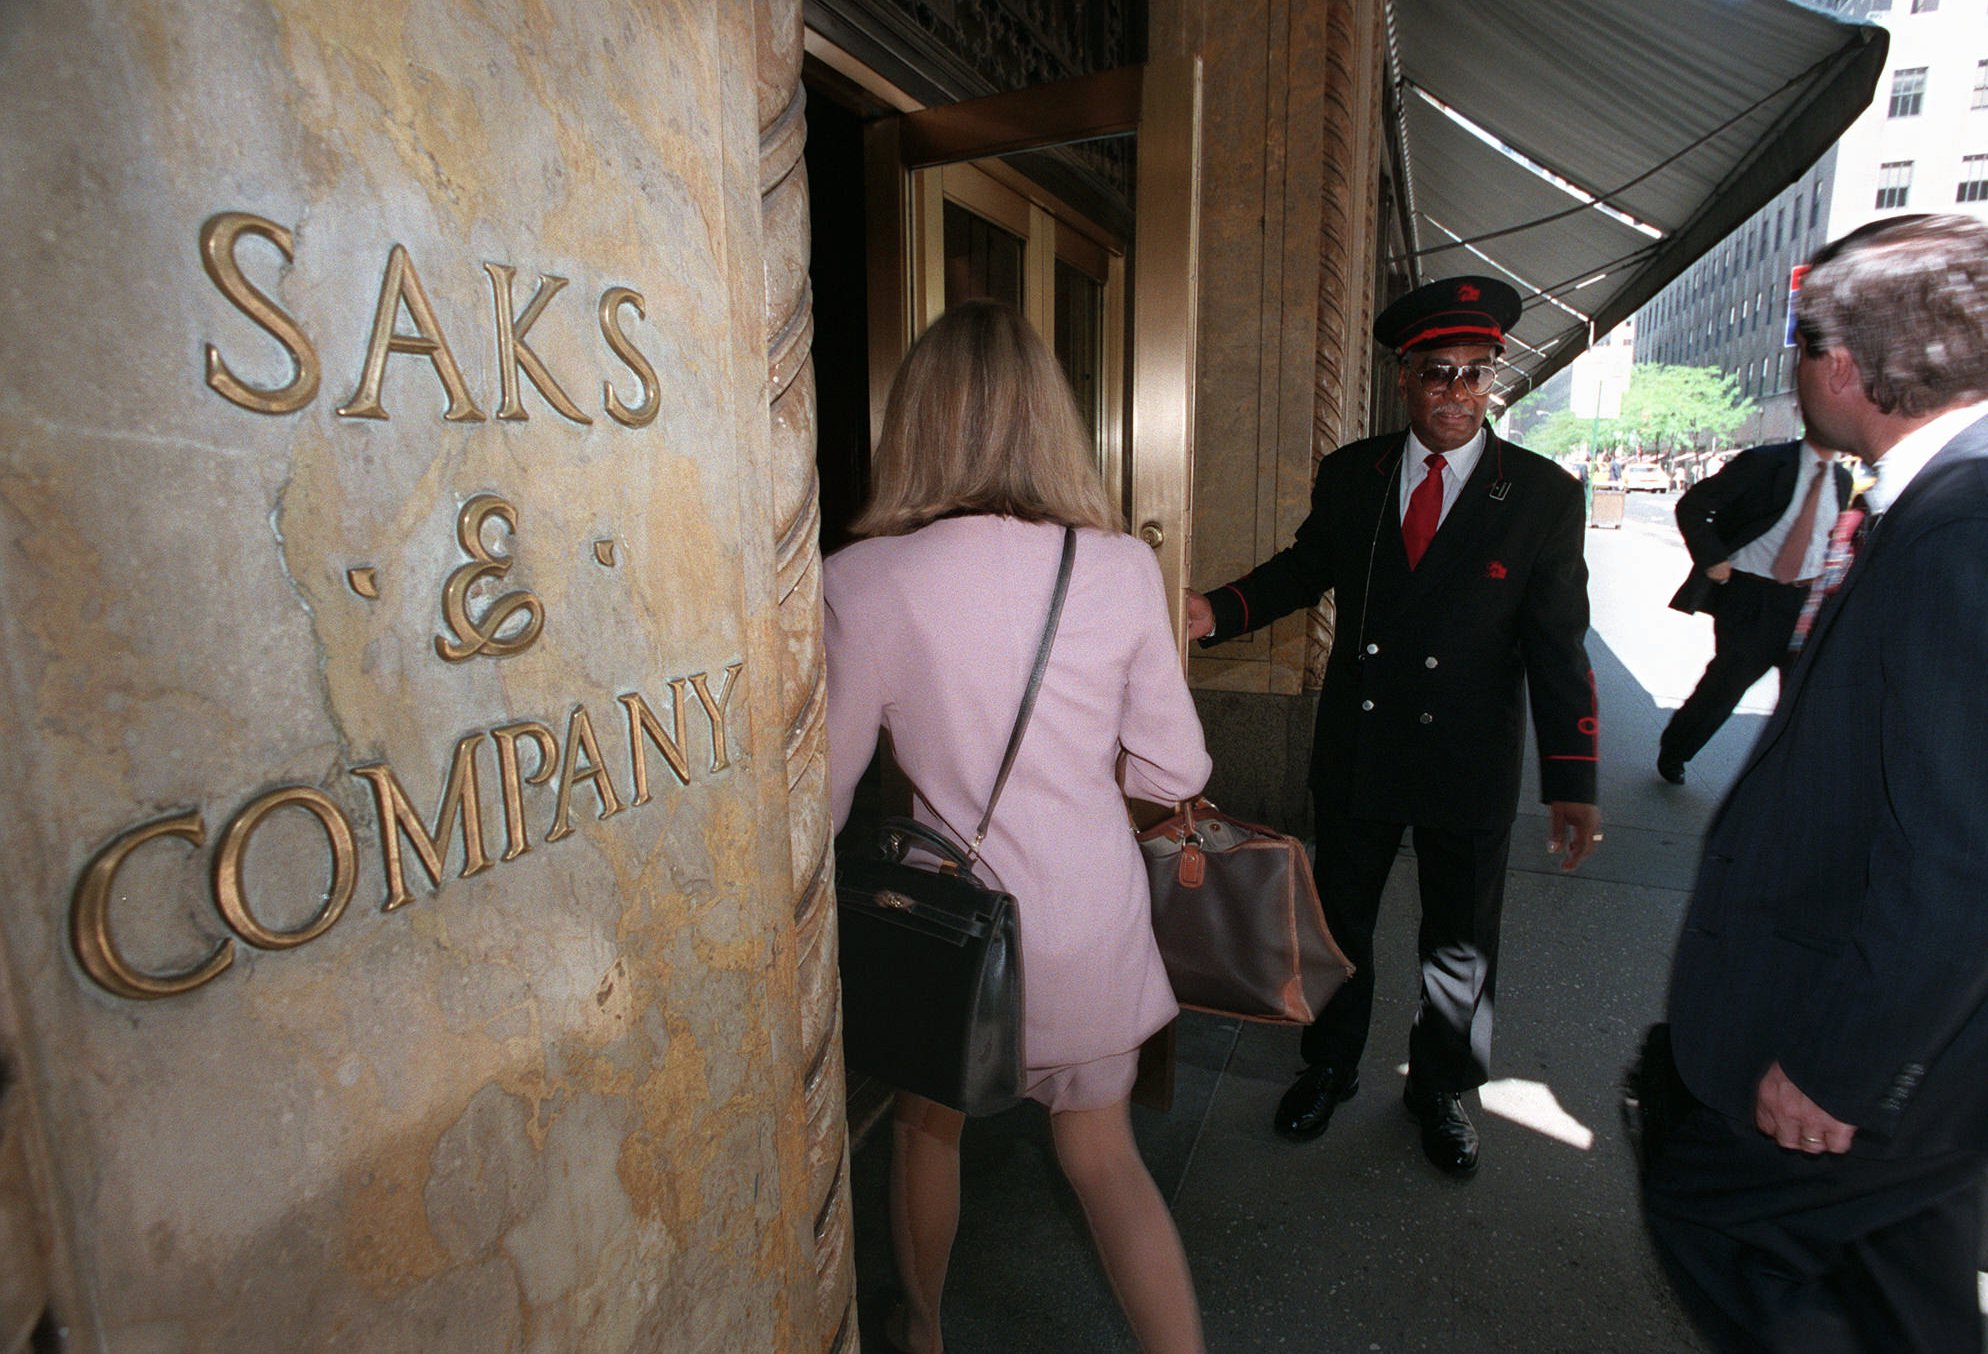 BOND Saks & Company doorman Haywood Bond, a 17-year employee, opens the 50th Street store entrance for customersSAKS FIFTH AVENUE, NEW YORK, USA